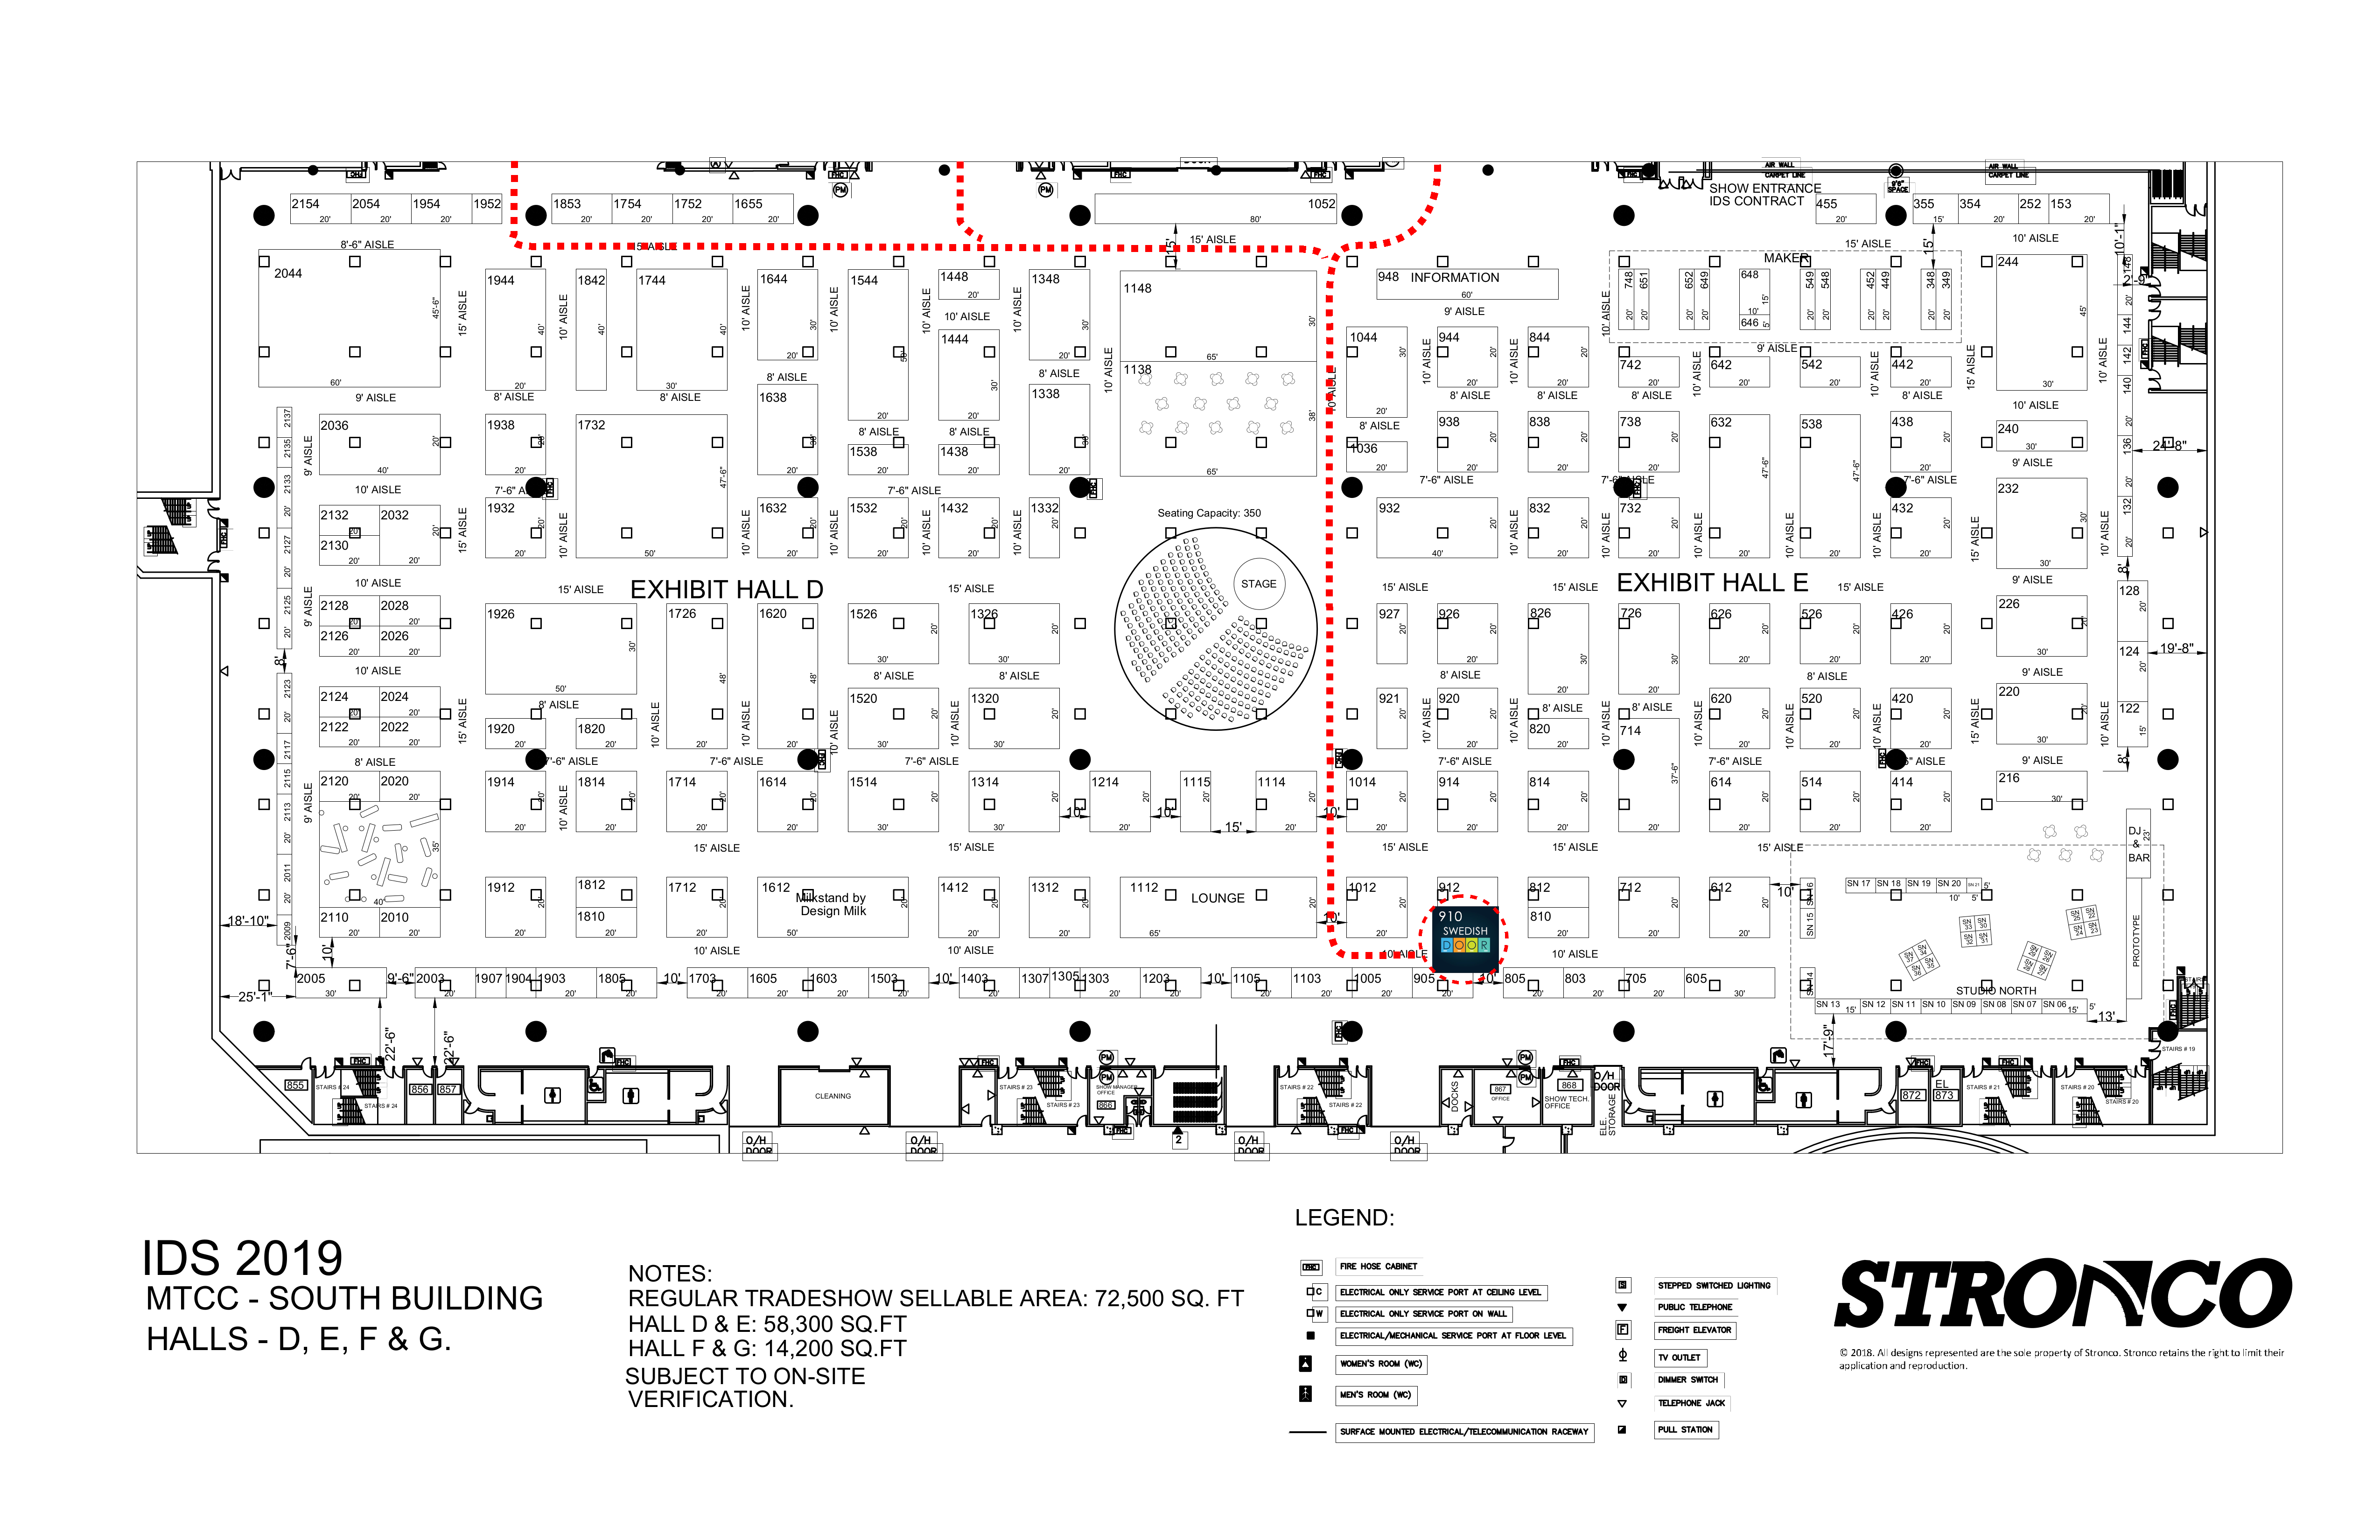 IDS 19 Floor Plan